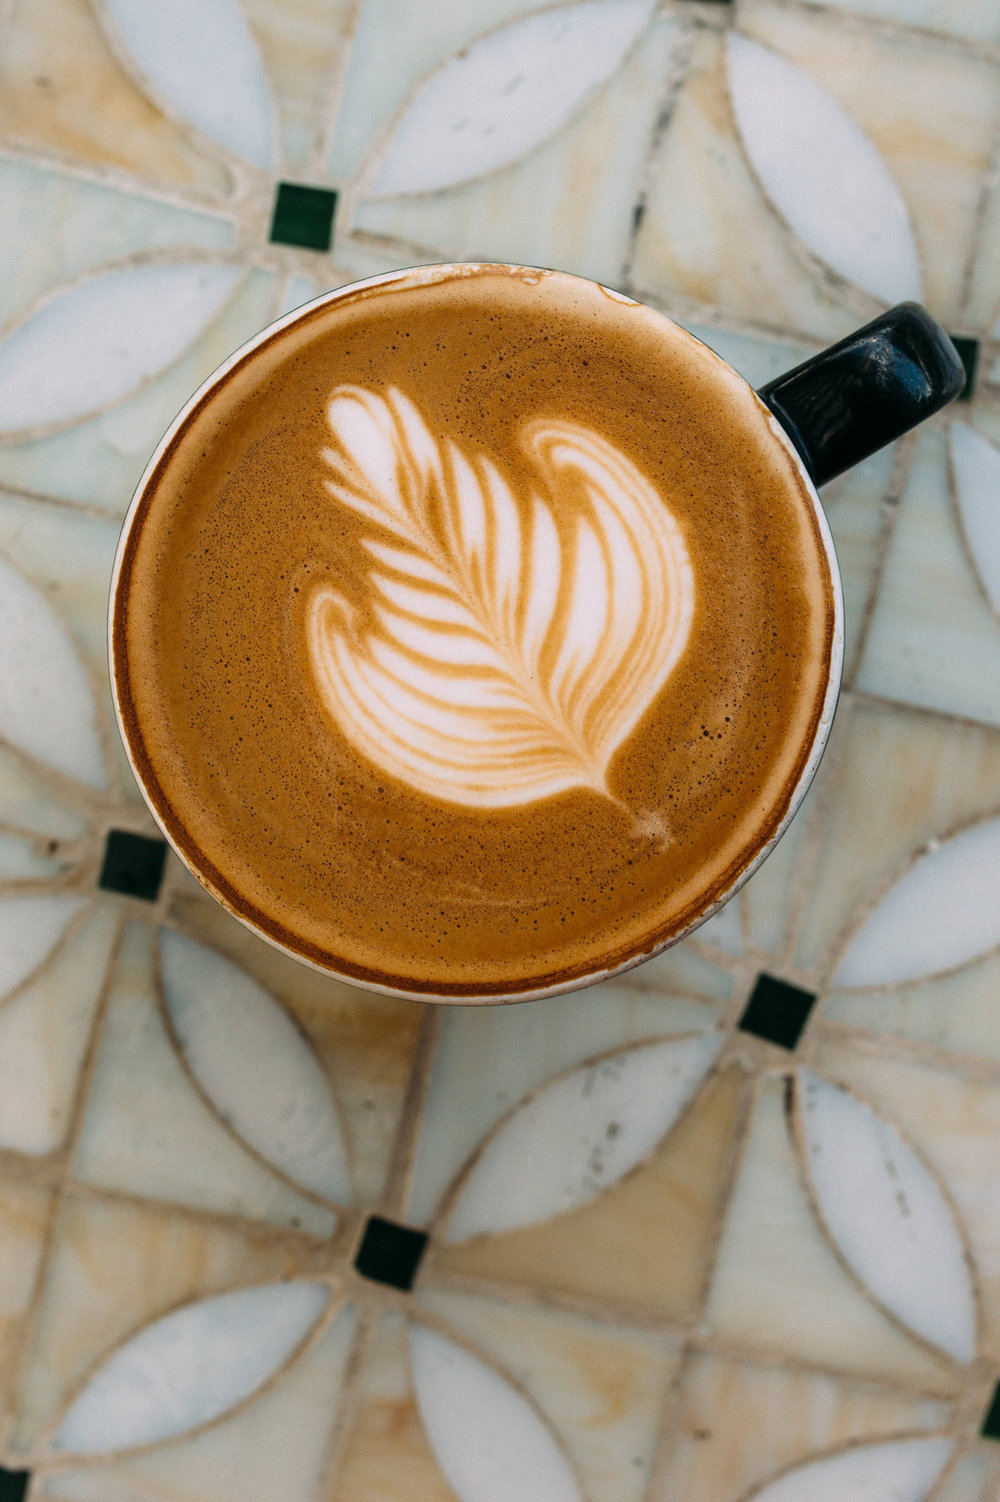 All coffee drinks at the Kona Coffee & Tea café can be ordered decaf. PHOTO: Blake Wisz